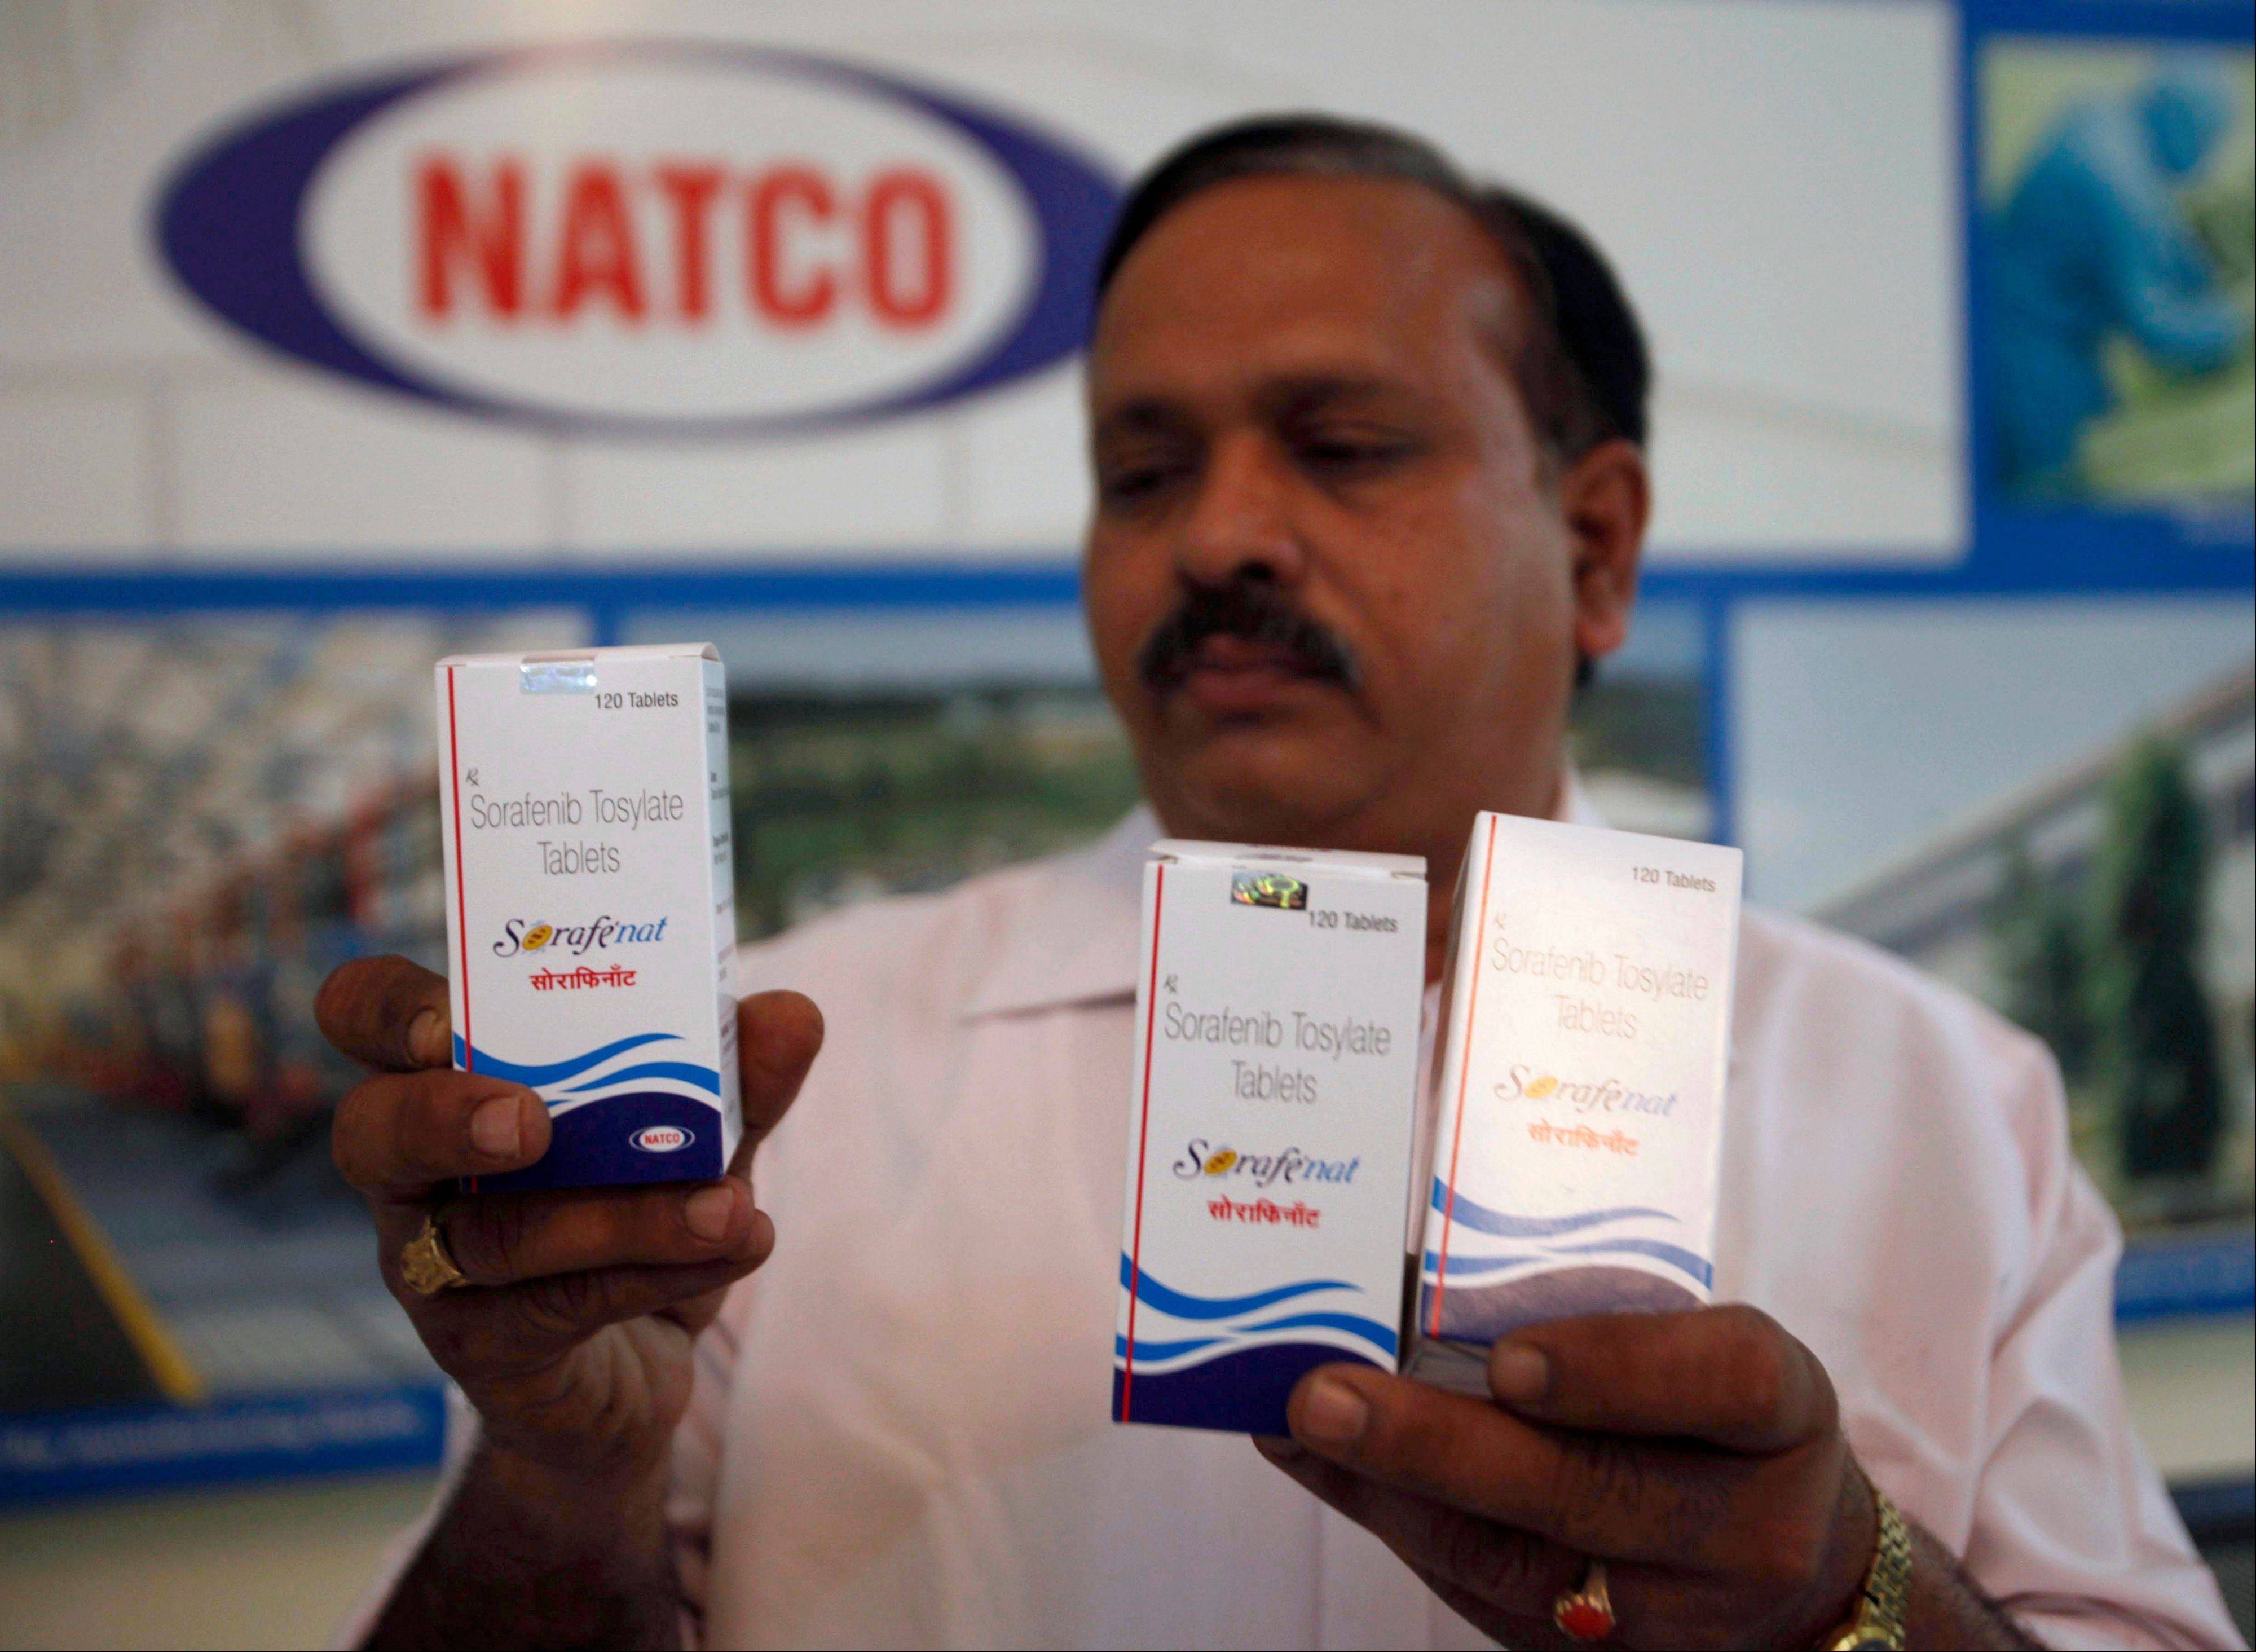 Natco Pharma Ltd. Secretary and General Manager Legal and Corp. Affairs M. Adinarayana displays Sorafenib Tosylate drugs meant for cancer treatment, at the company�s head office in Hyderabad, India. India�s patent appeals office.